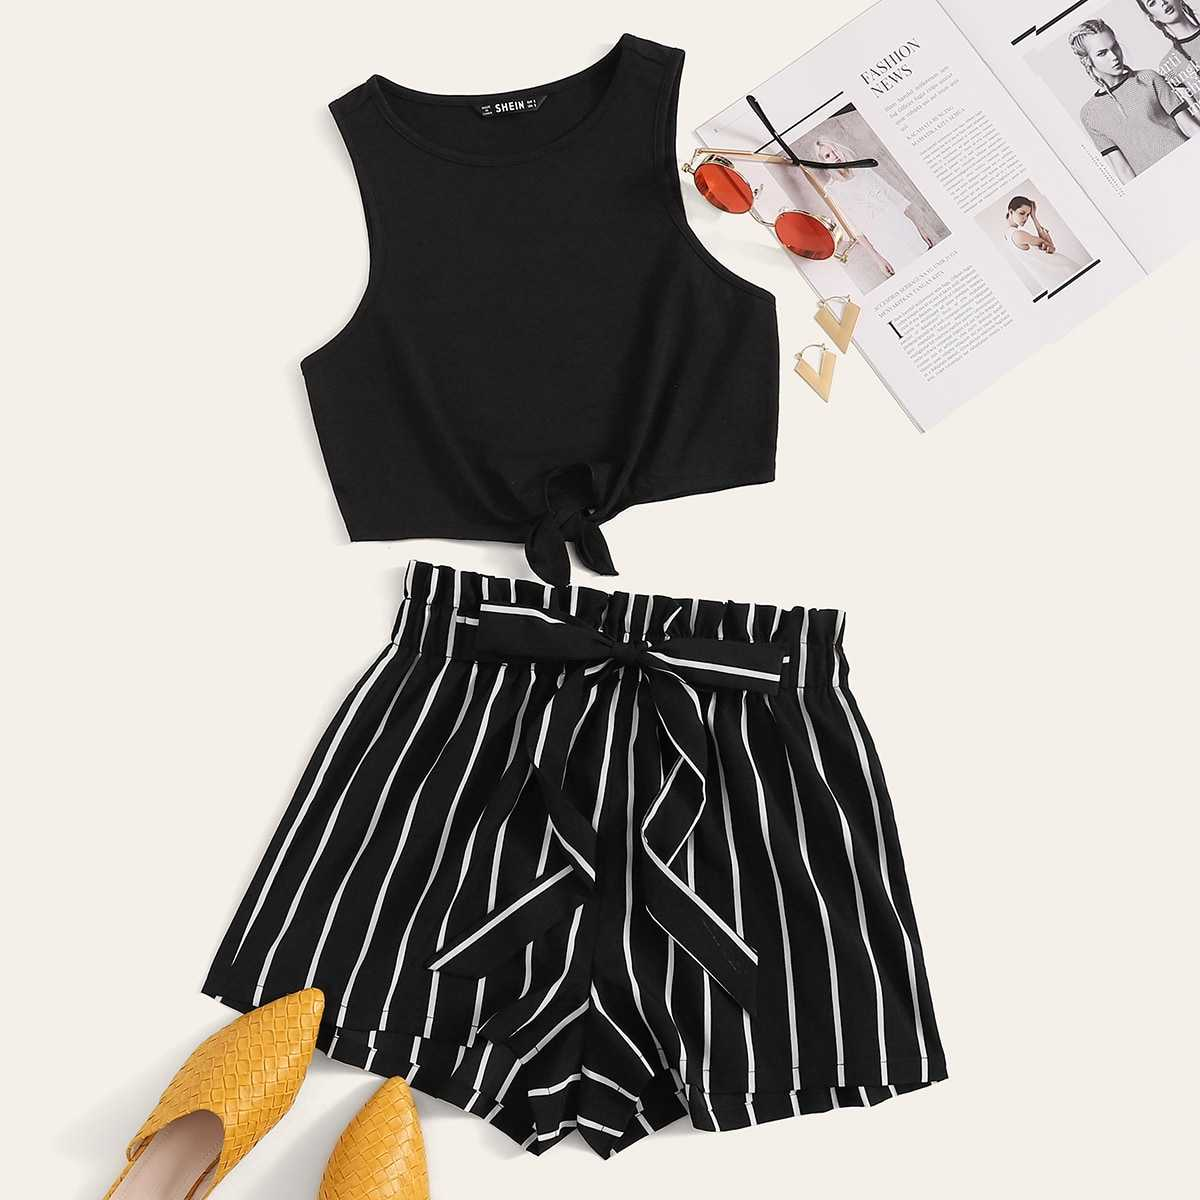 Knotted Hem Top & Striped Paperbag Waist Shorts Set in Black by ROMWE on GOOFASH